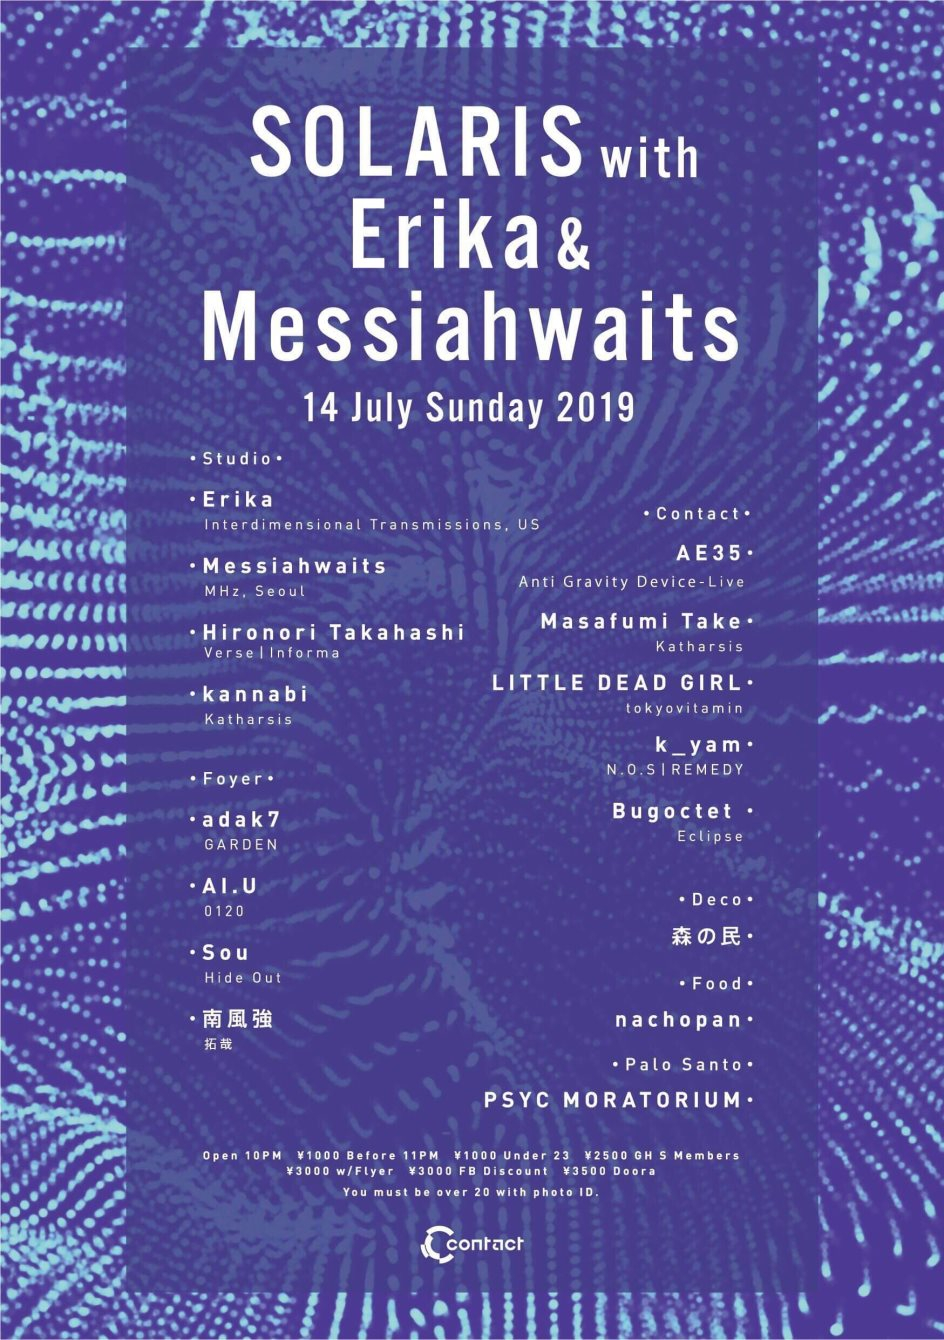 Solaris with Erika & Messiahwaits - Flyer front